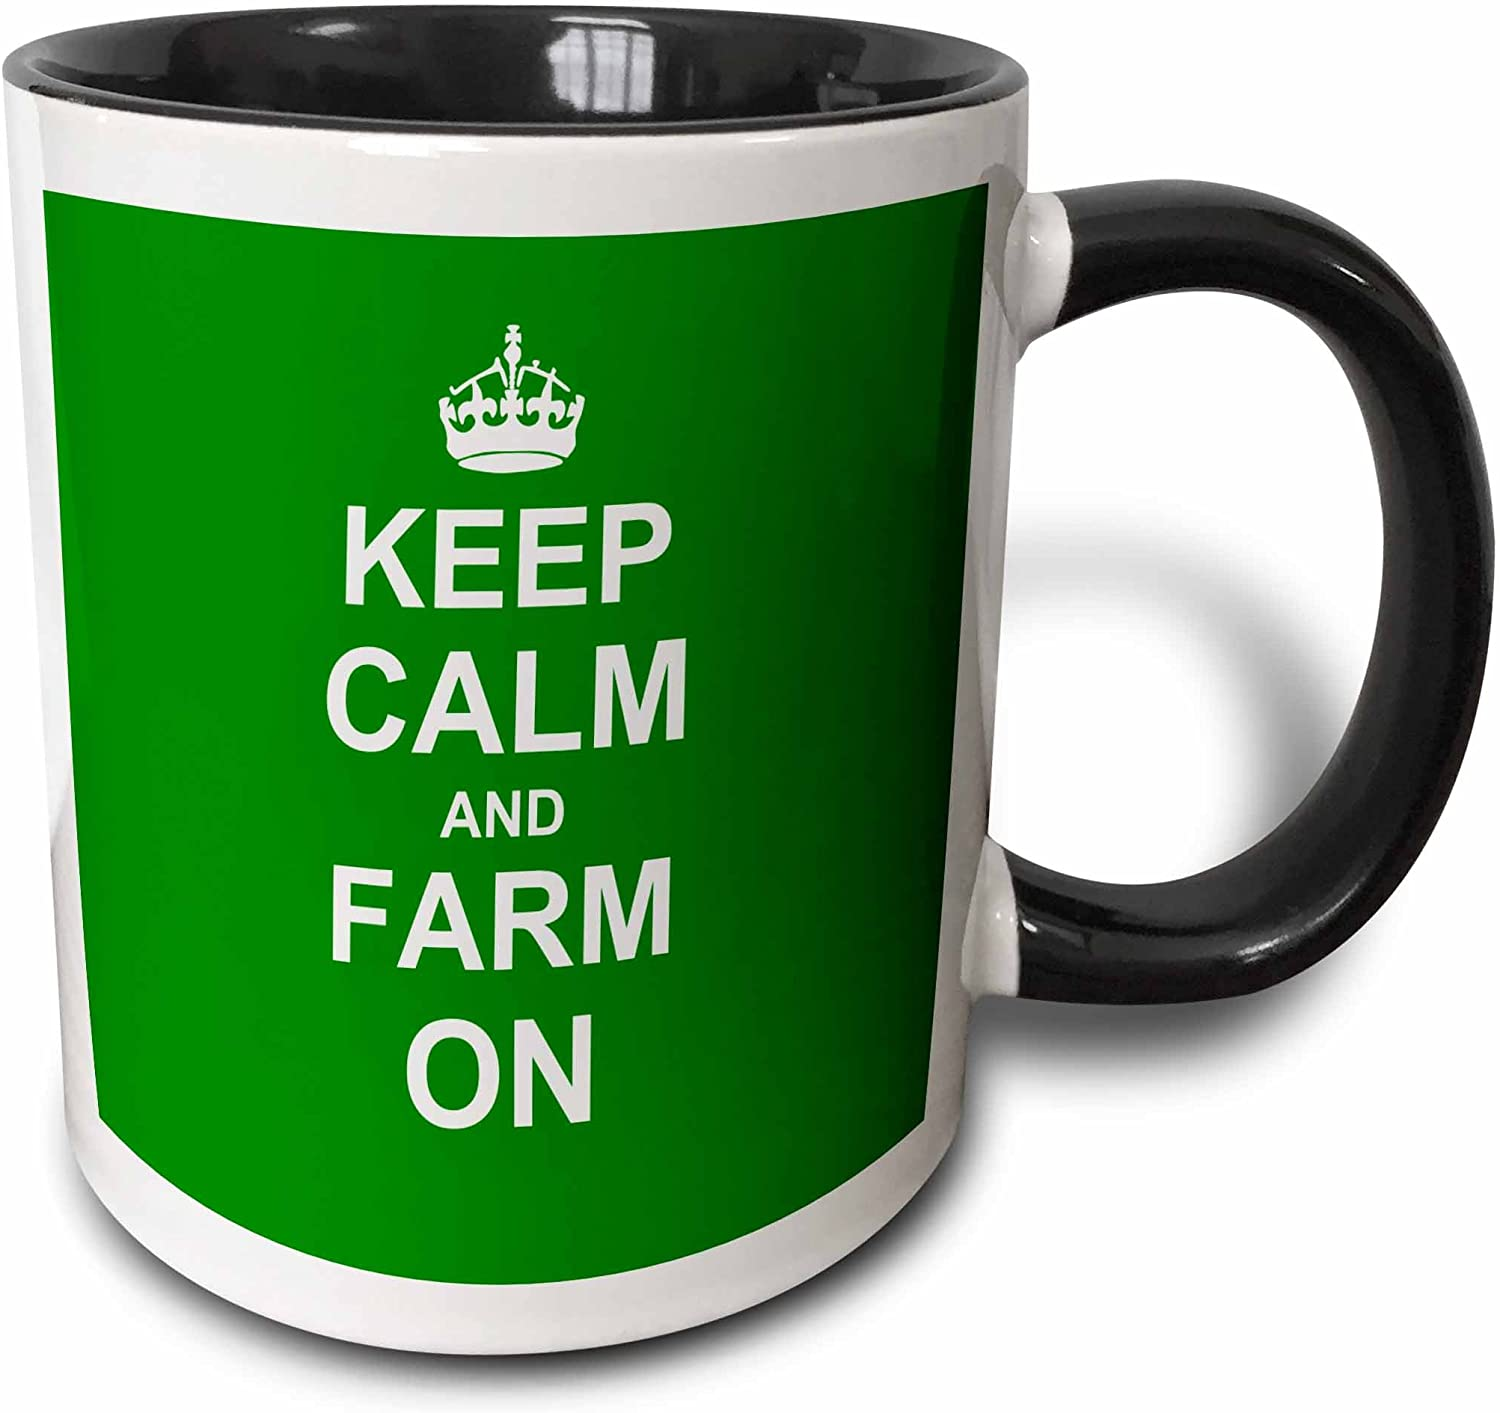 3dRose Keep Calm And Farm On Mug, 11 oz, Black